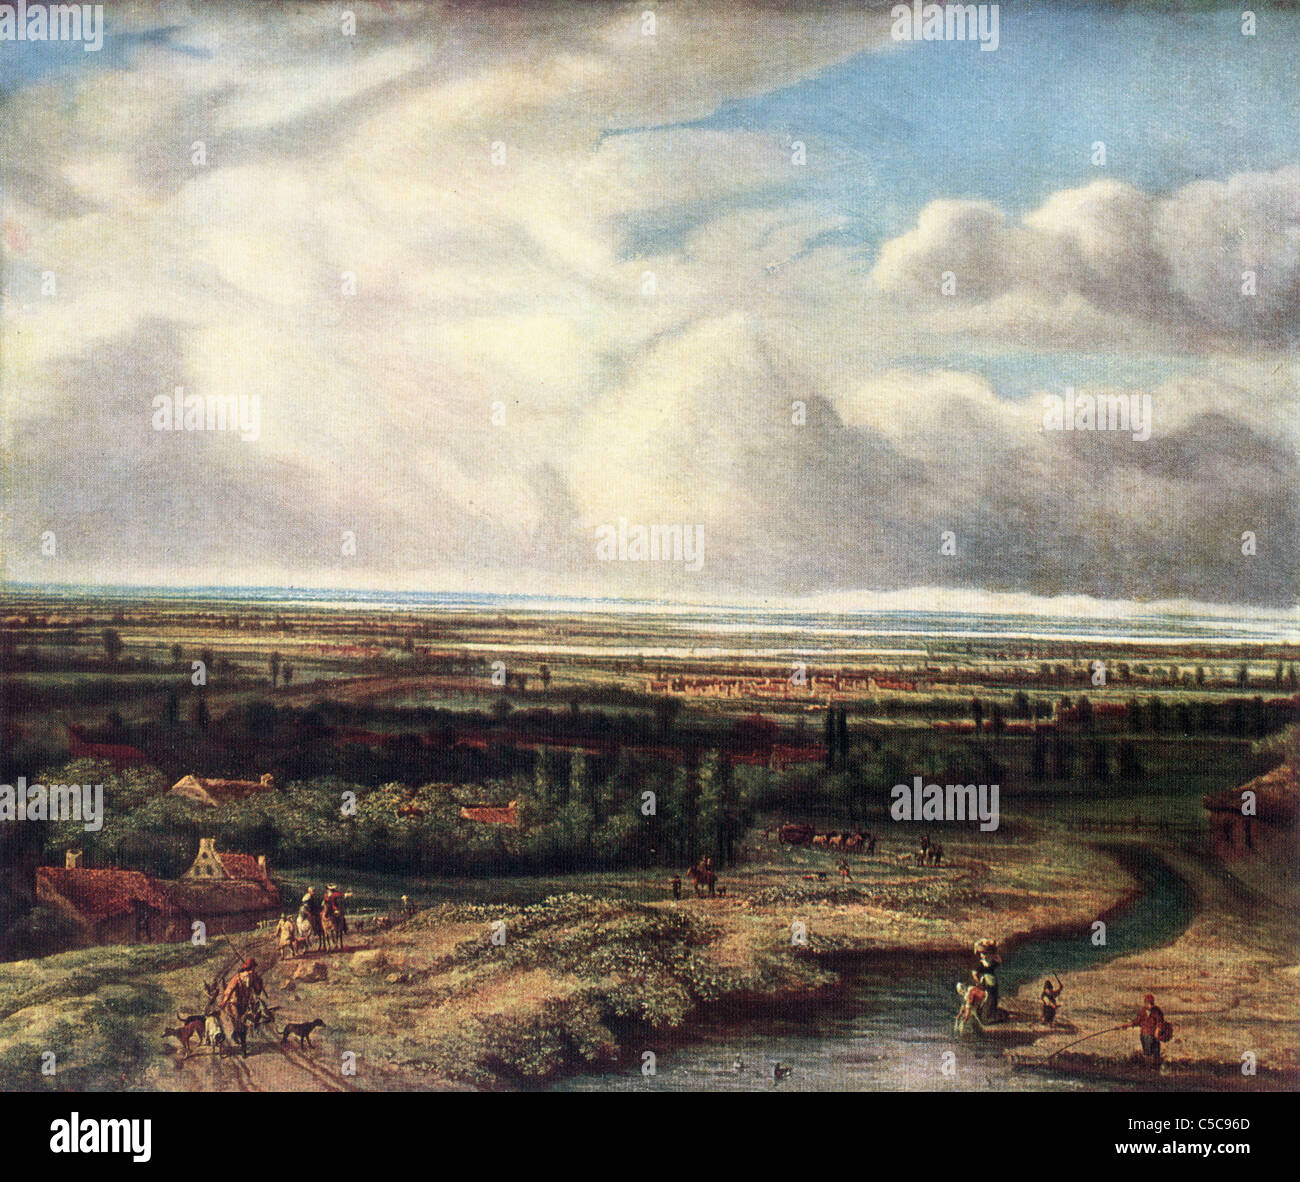 Painting by Philips de Koninck, Late Dutch School; 'Landscape, a View in Holland', Oil on Canvas - Stock Image